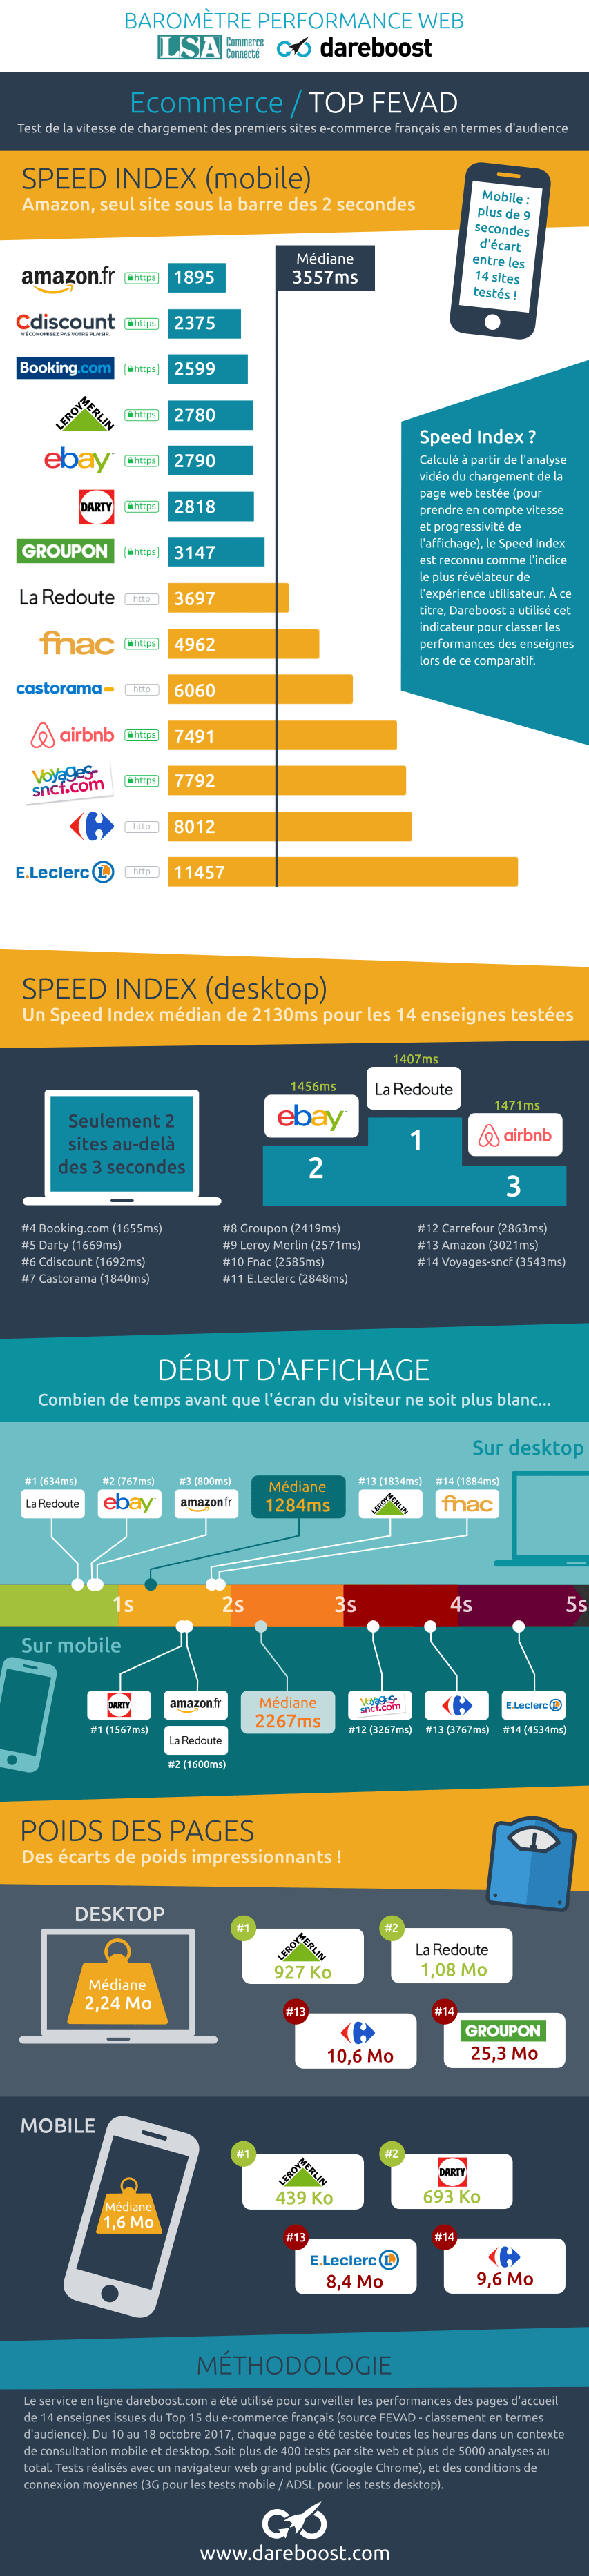 Barometre ecommerce performance web TOP15 France - Dareboost